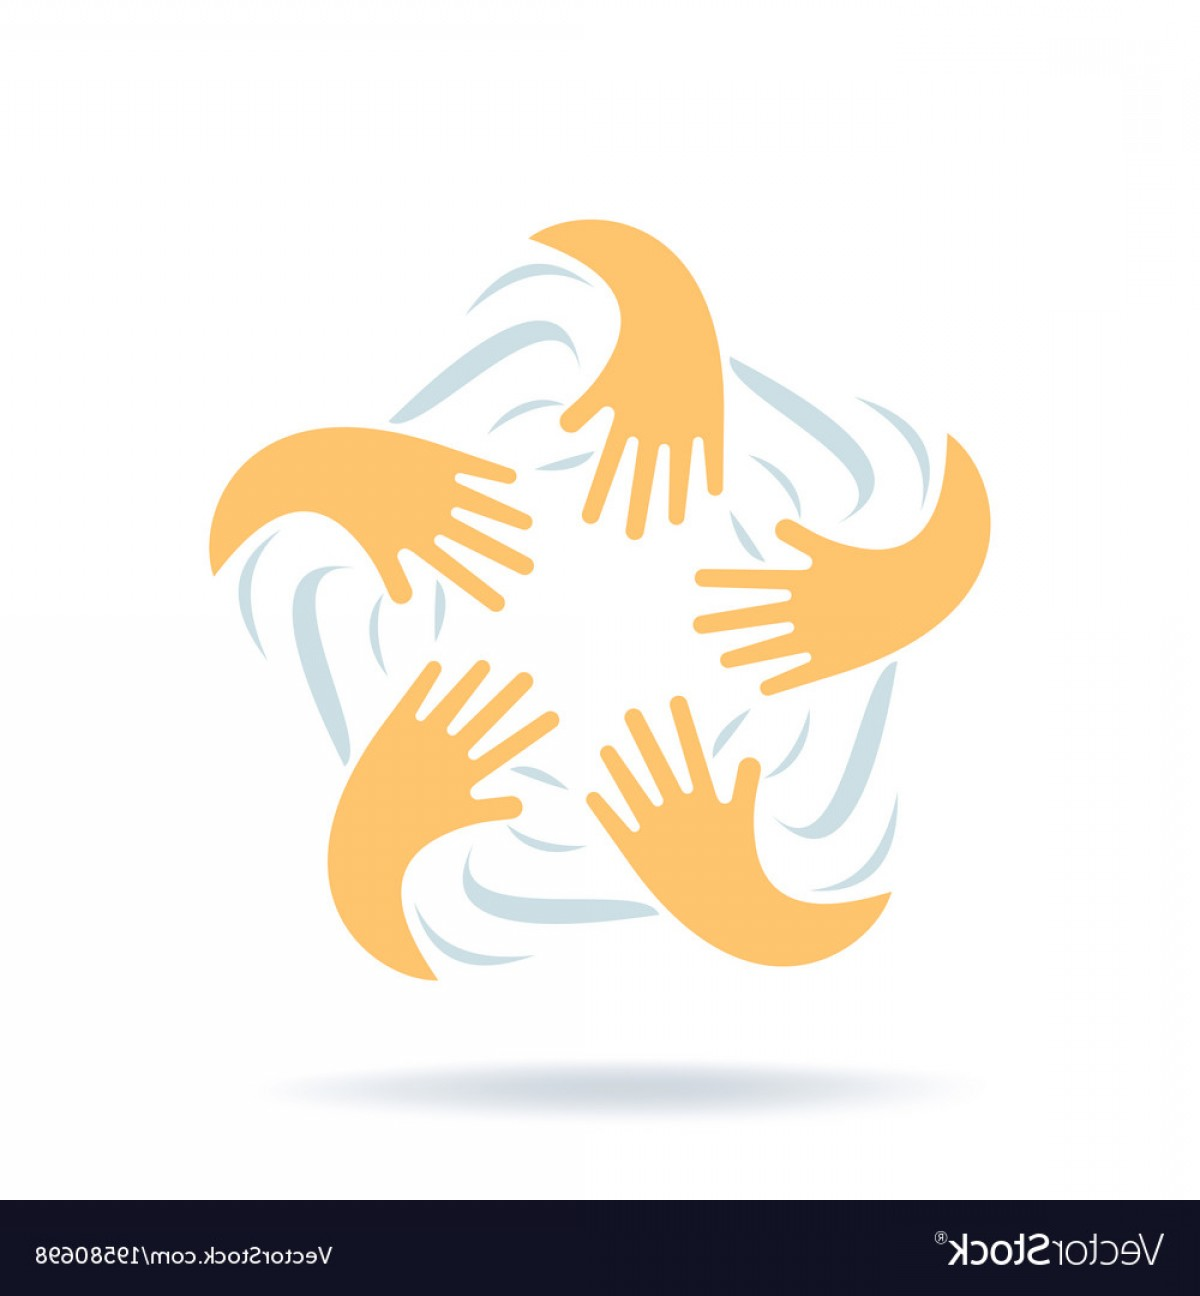 Friendship Symbol Vector: Creative Logo With Hands Connection Friendship Vector